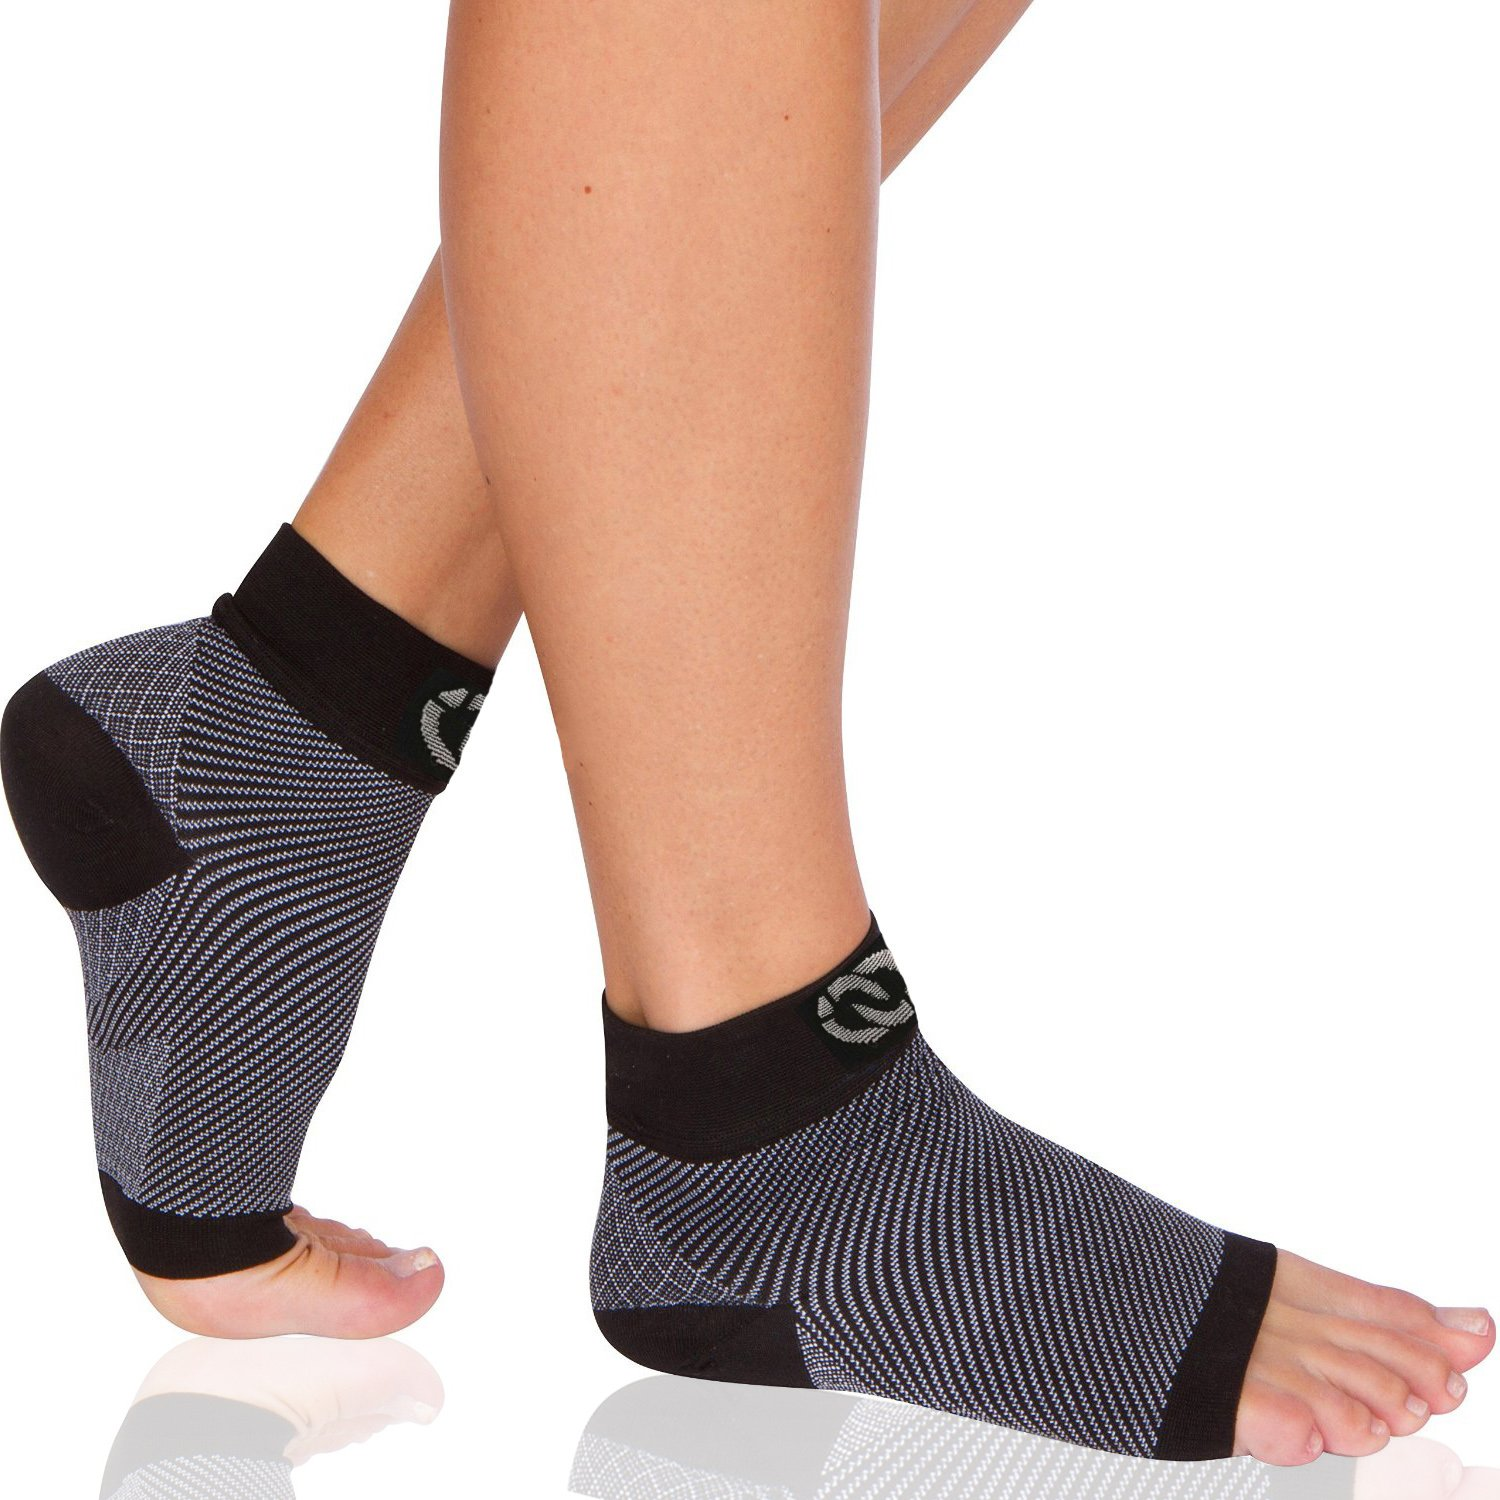 Compressions Plantar Fasciitis Socks (1 Pair) Foot Sleeves with Arch & Heel Support Treatment for Men & Women - Best to Brace Insoles for Relief (Medium)